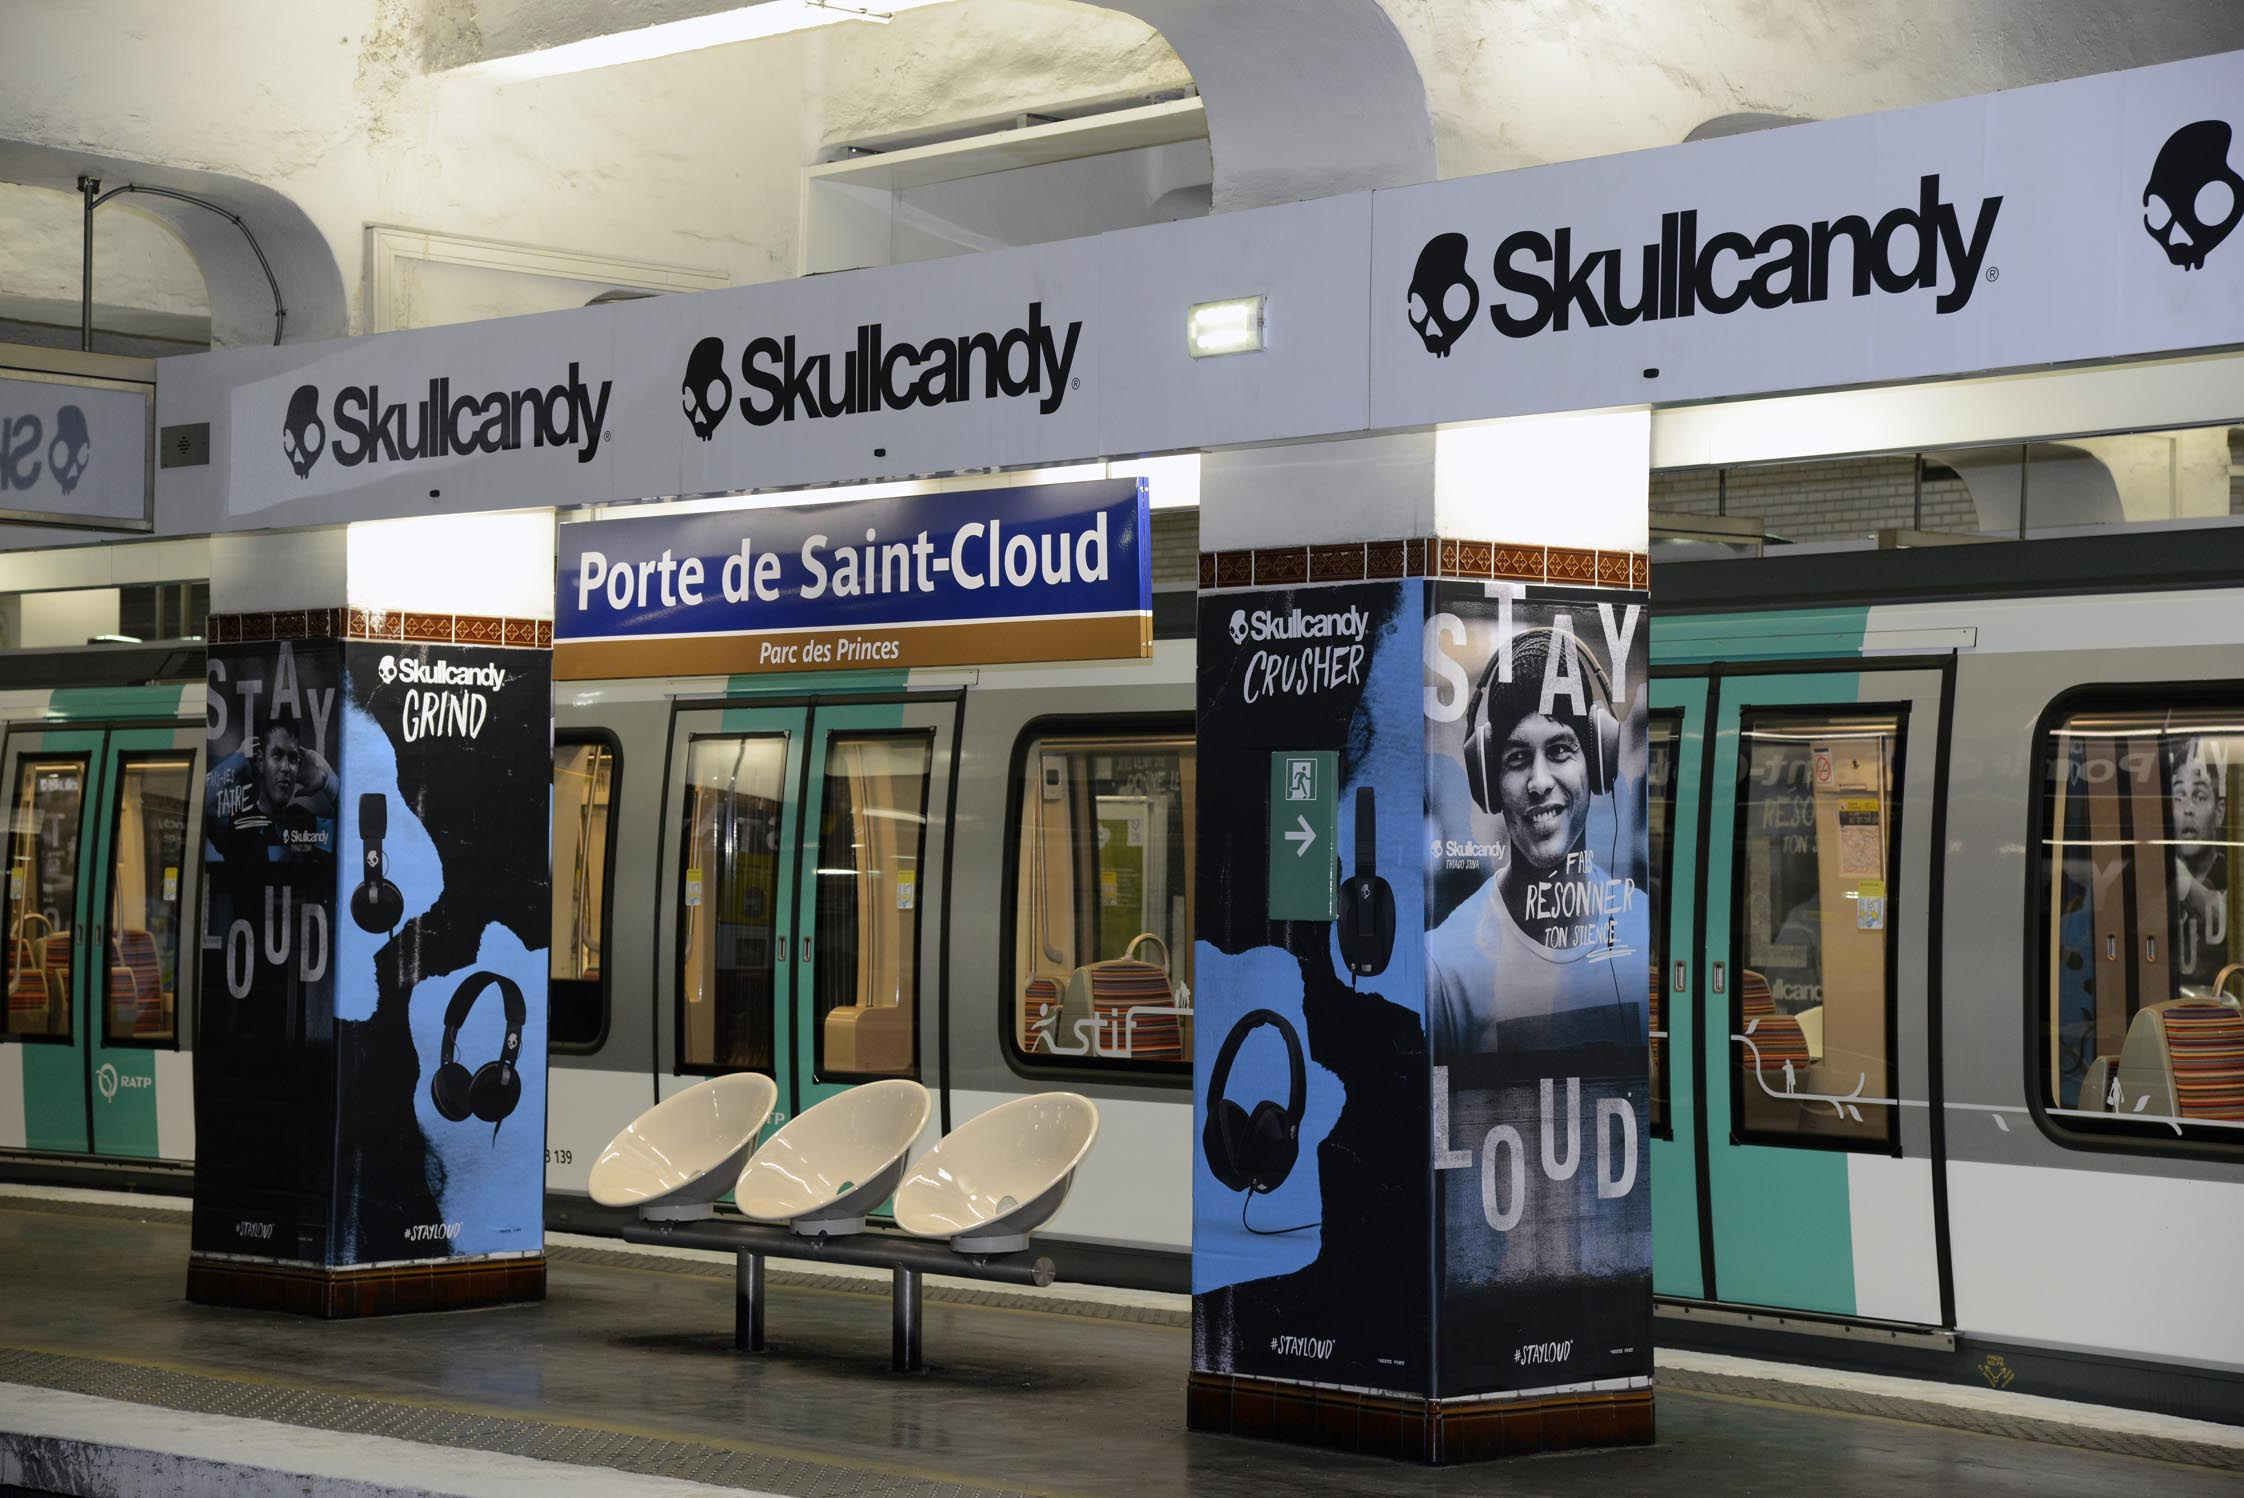 Skullcandy et thiago silva squattent la station de m tro porte de saint cloud - Salon des saveurs saint cloud ...